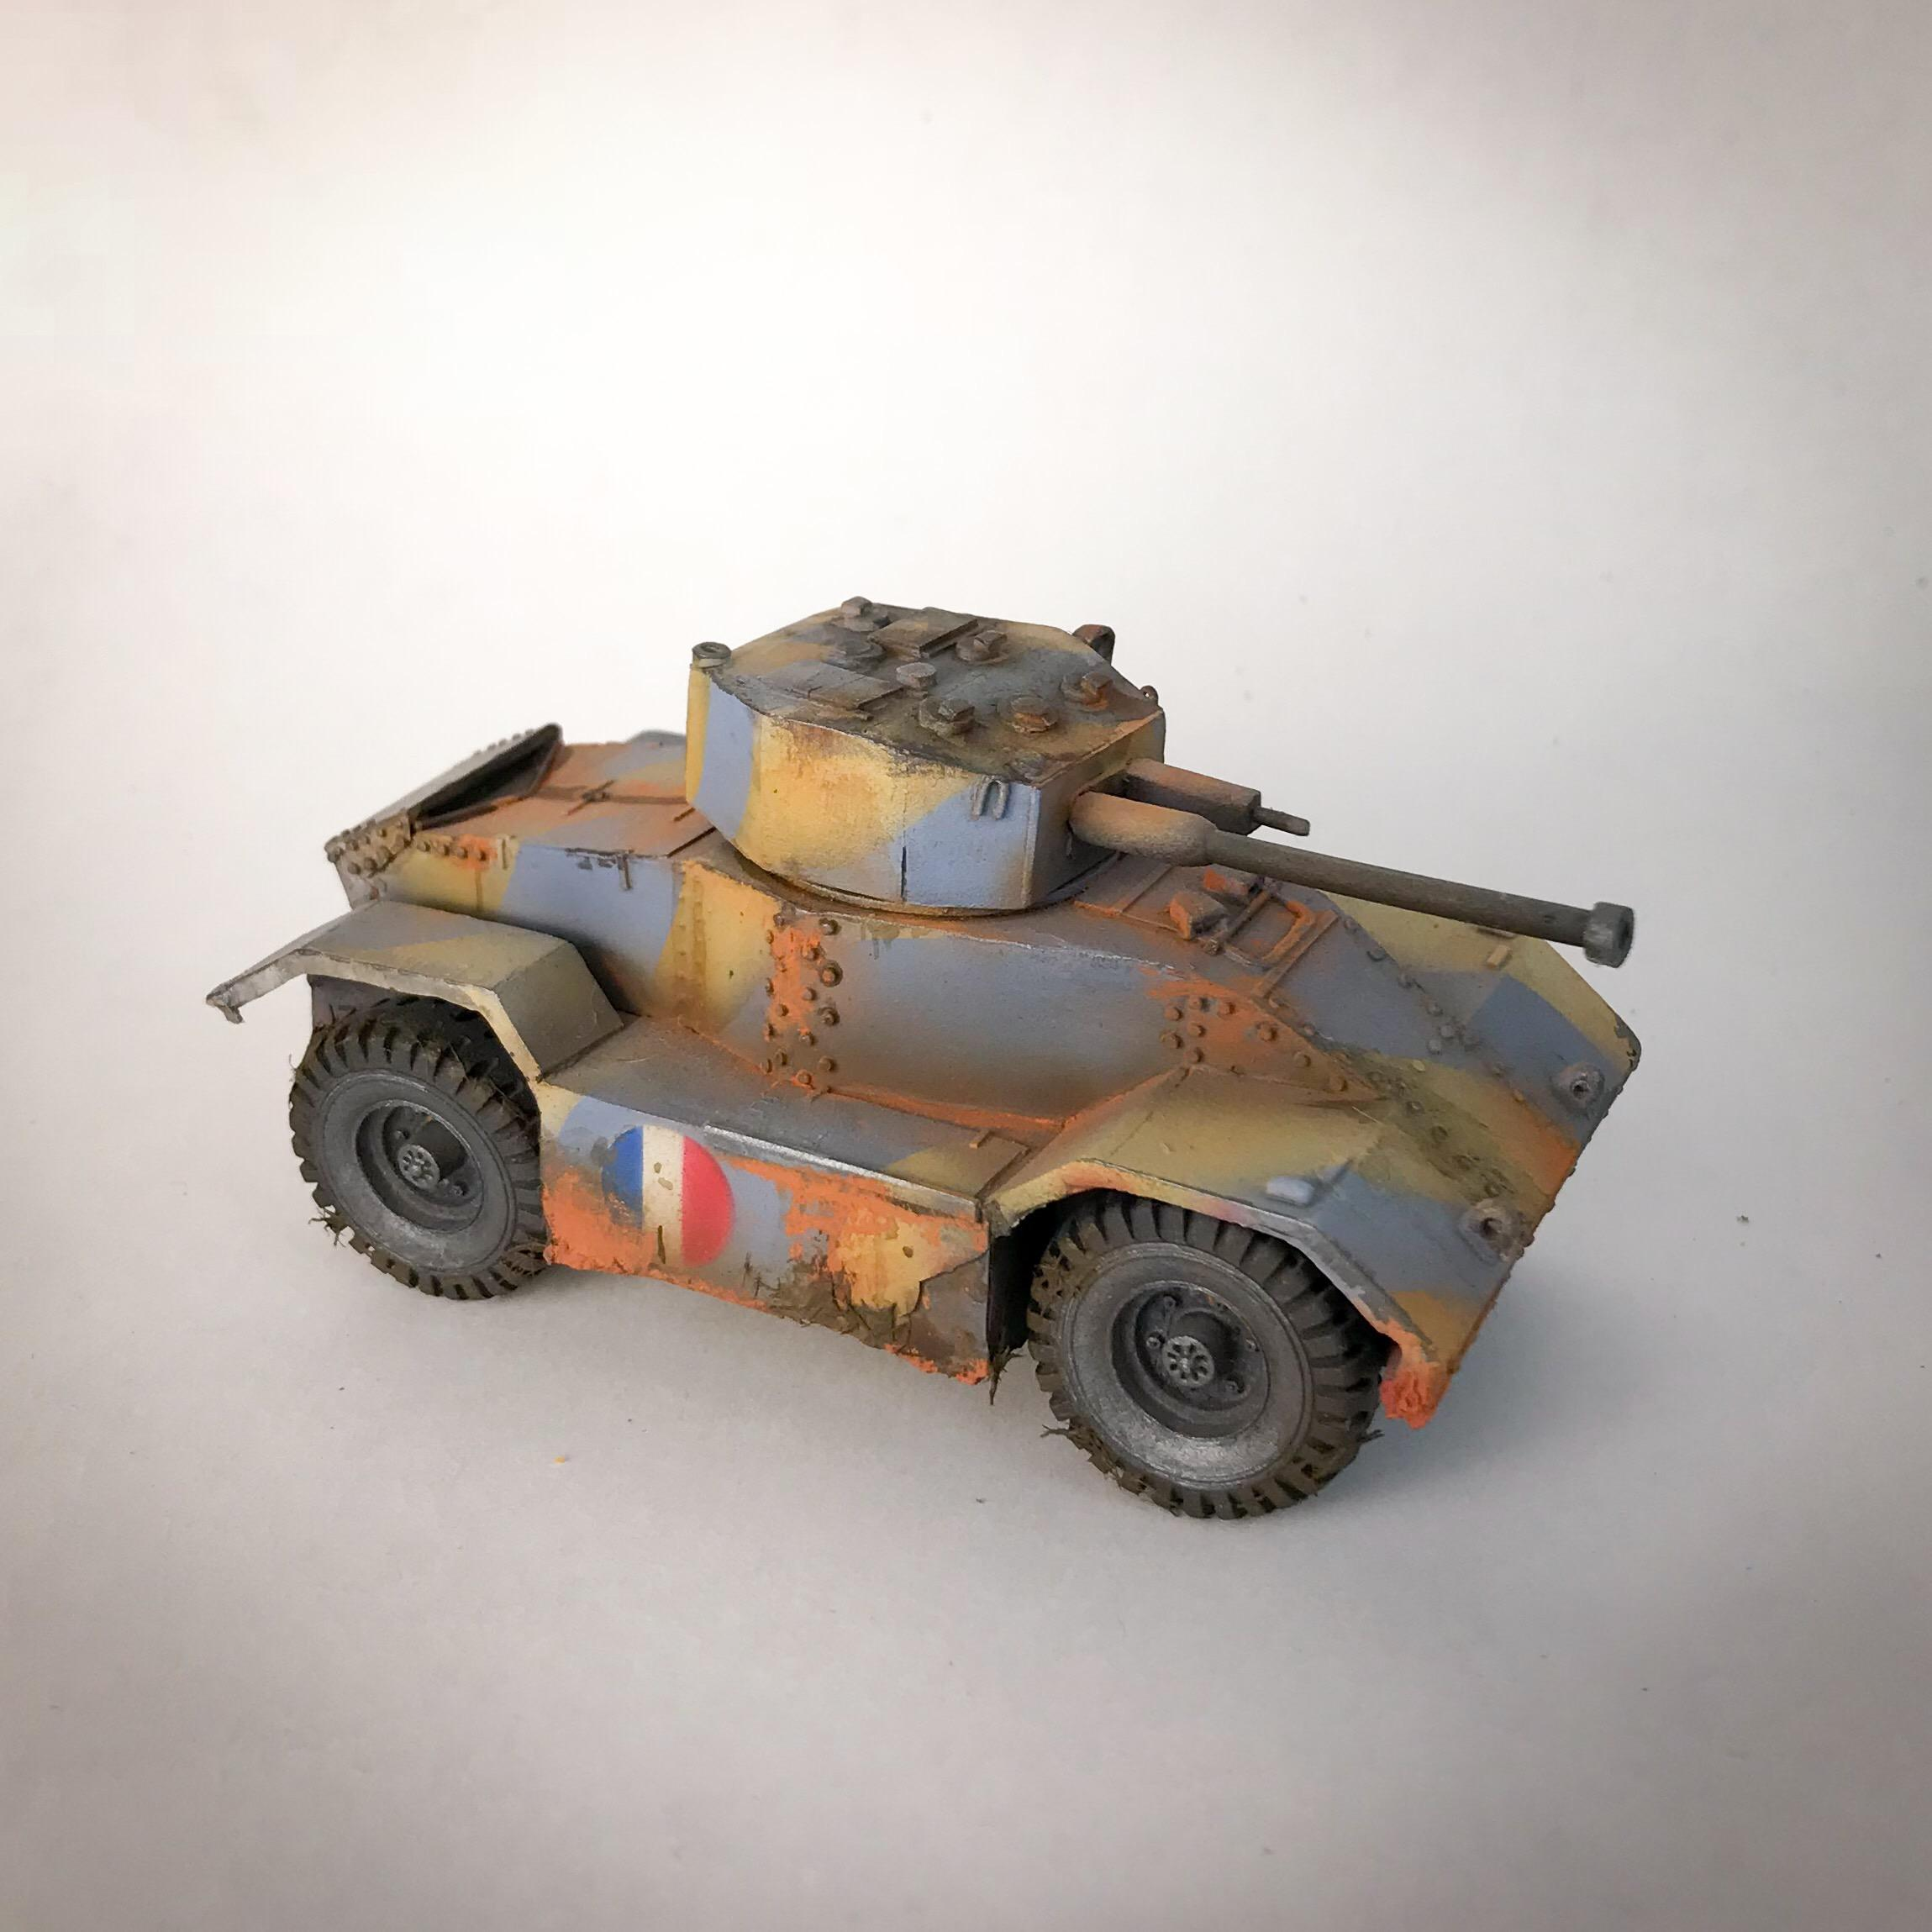 Airbrushed, Bolt Action, Flocking, French, Weathered, World War 2